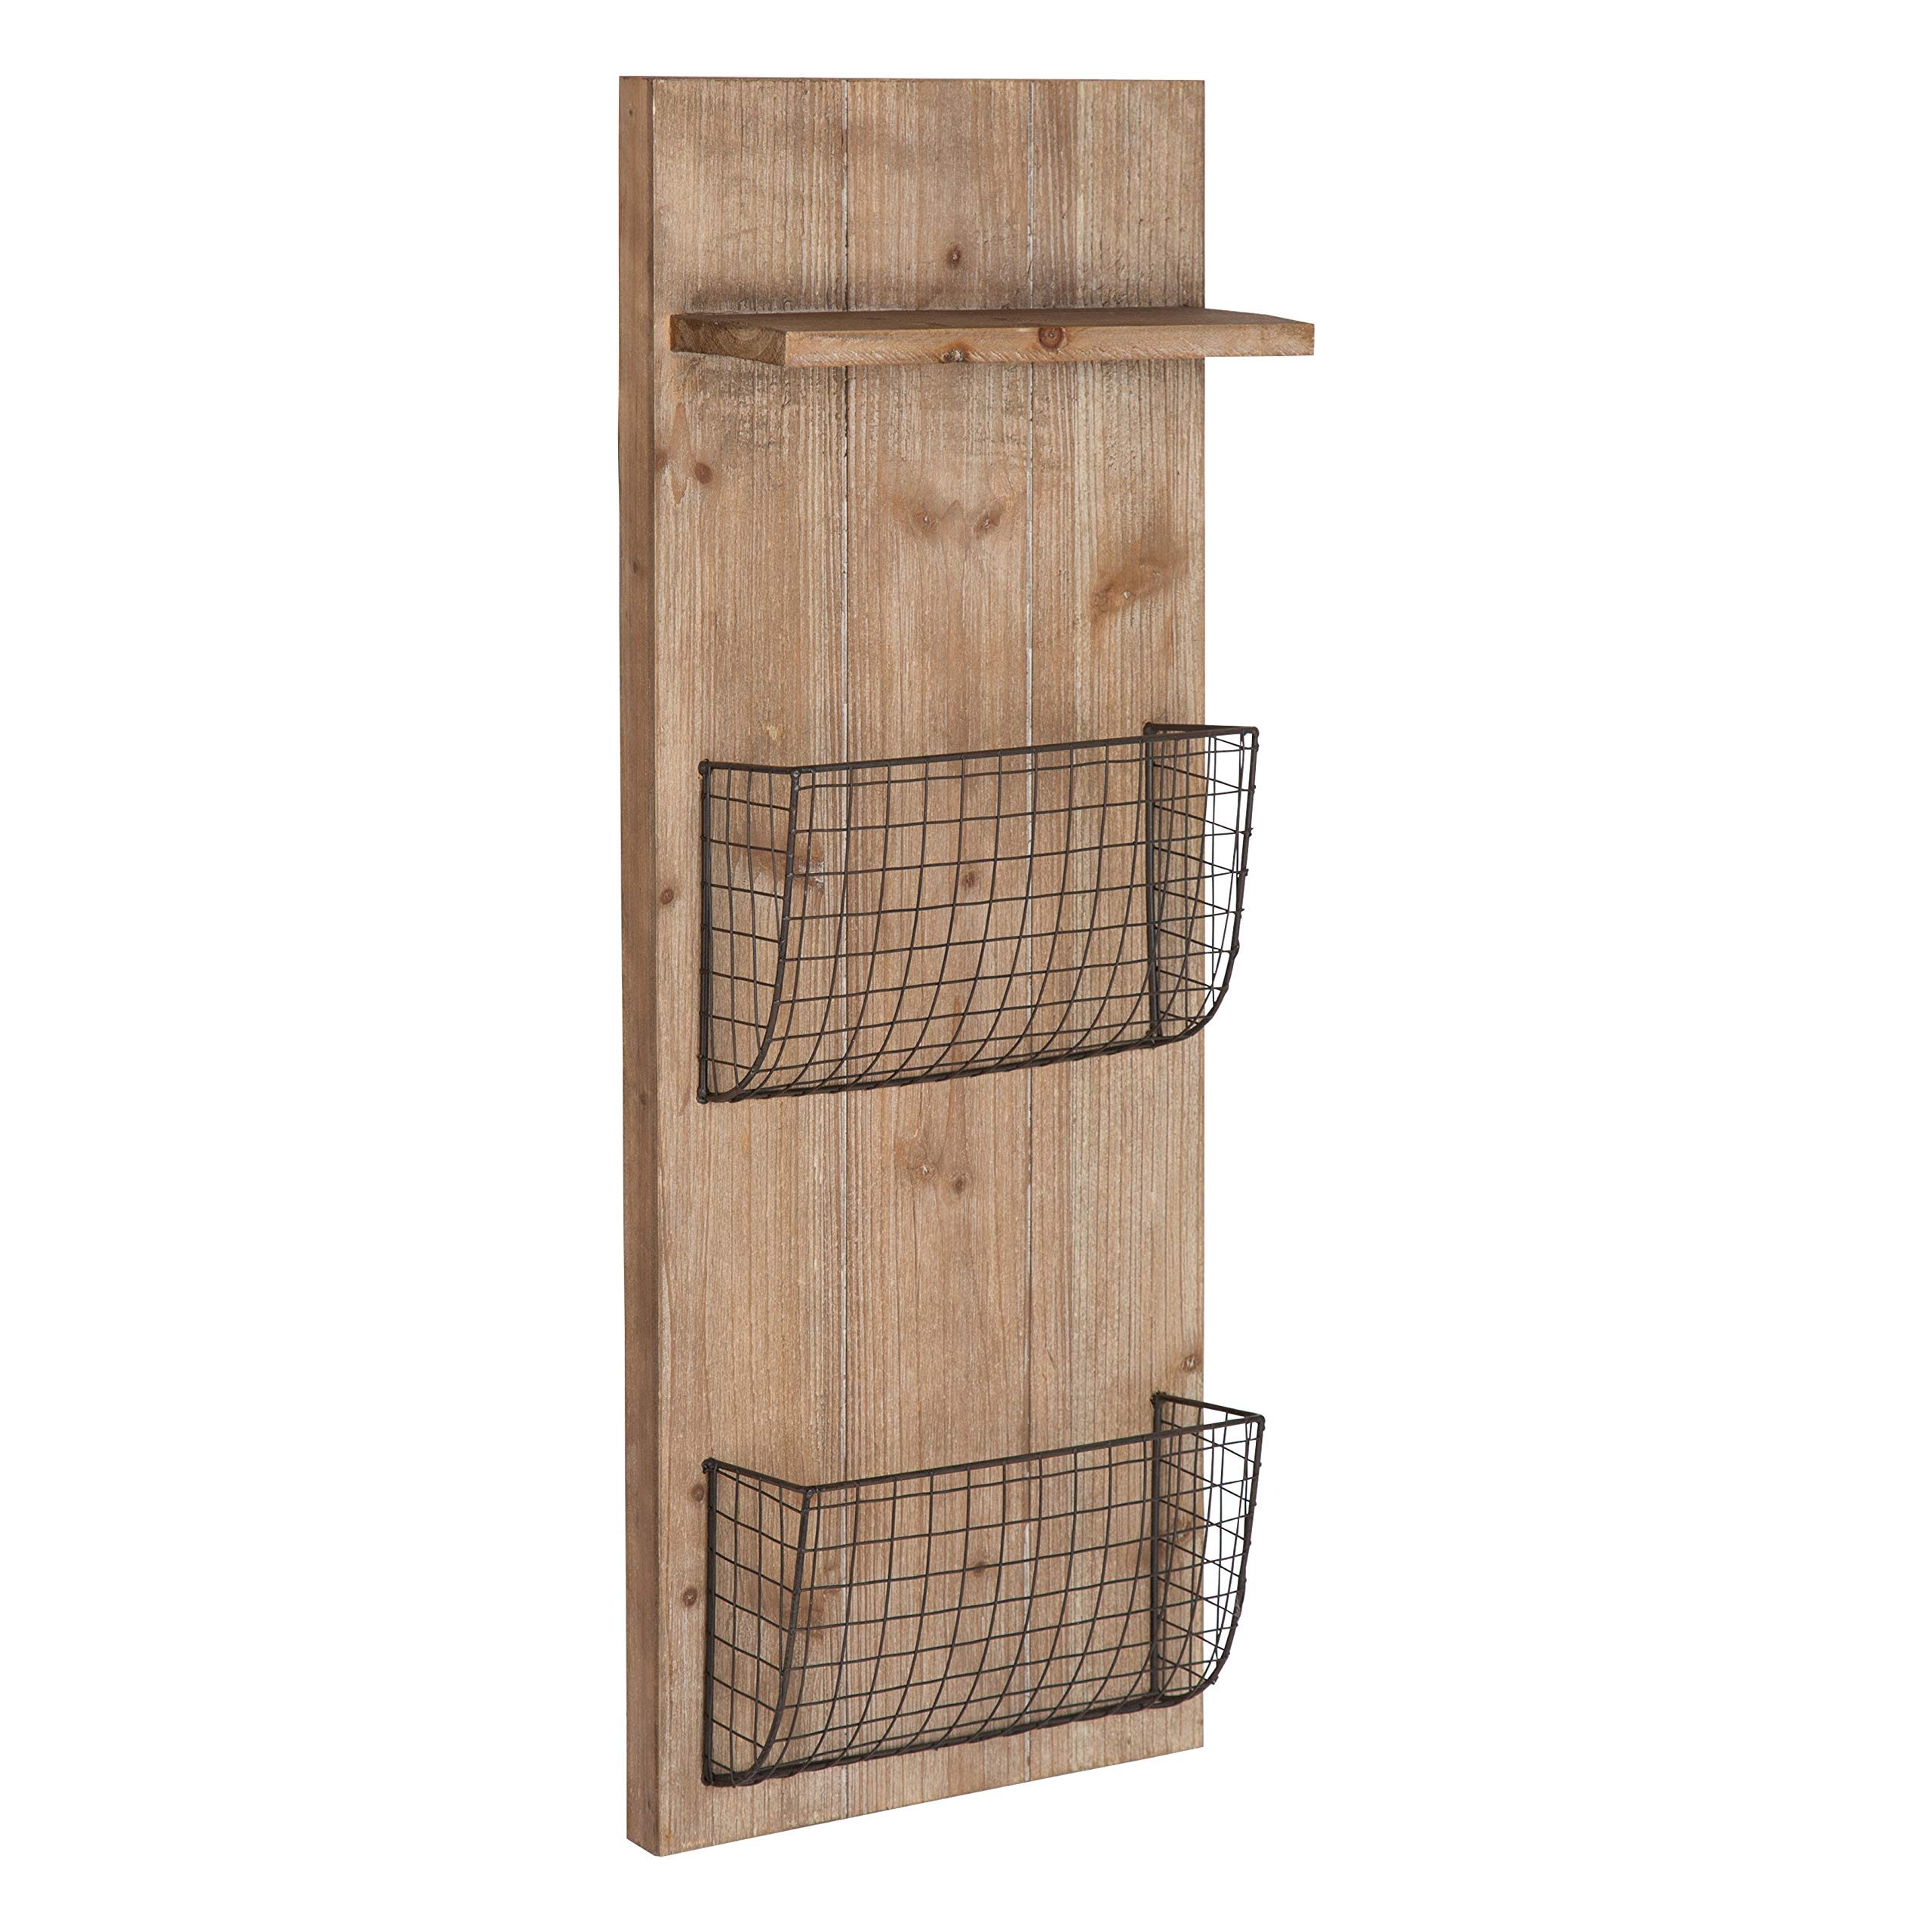 Kate and Laurel Wilden Farmhouse Style Wood Metal Wall Wire Mesh Storage Pockets Display Shelf Organizing Unit, Rustic Brown